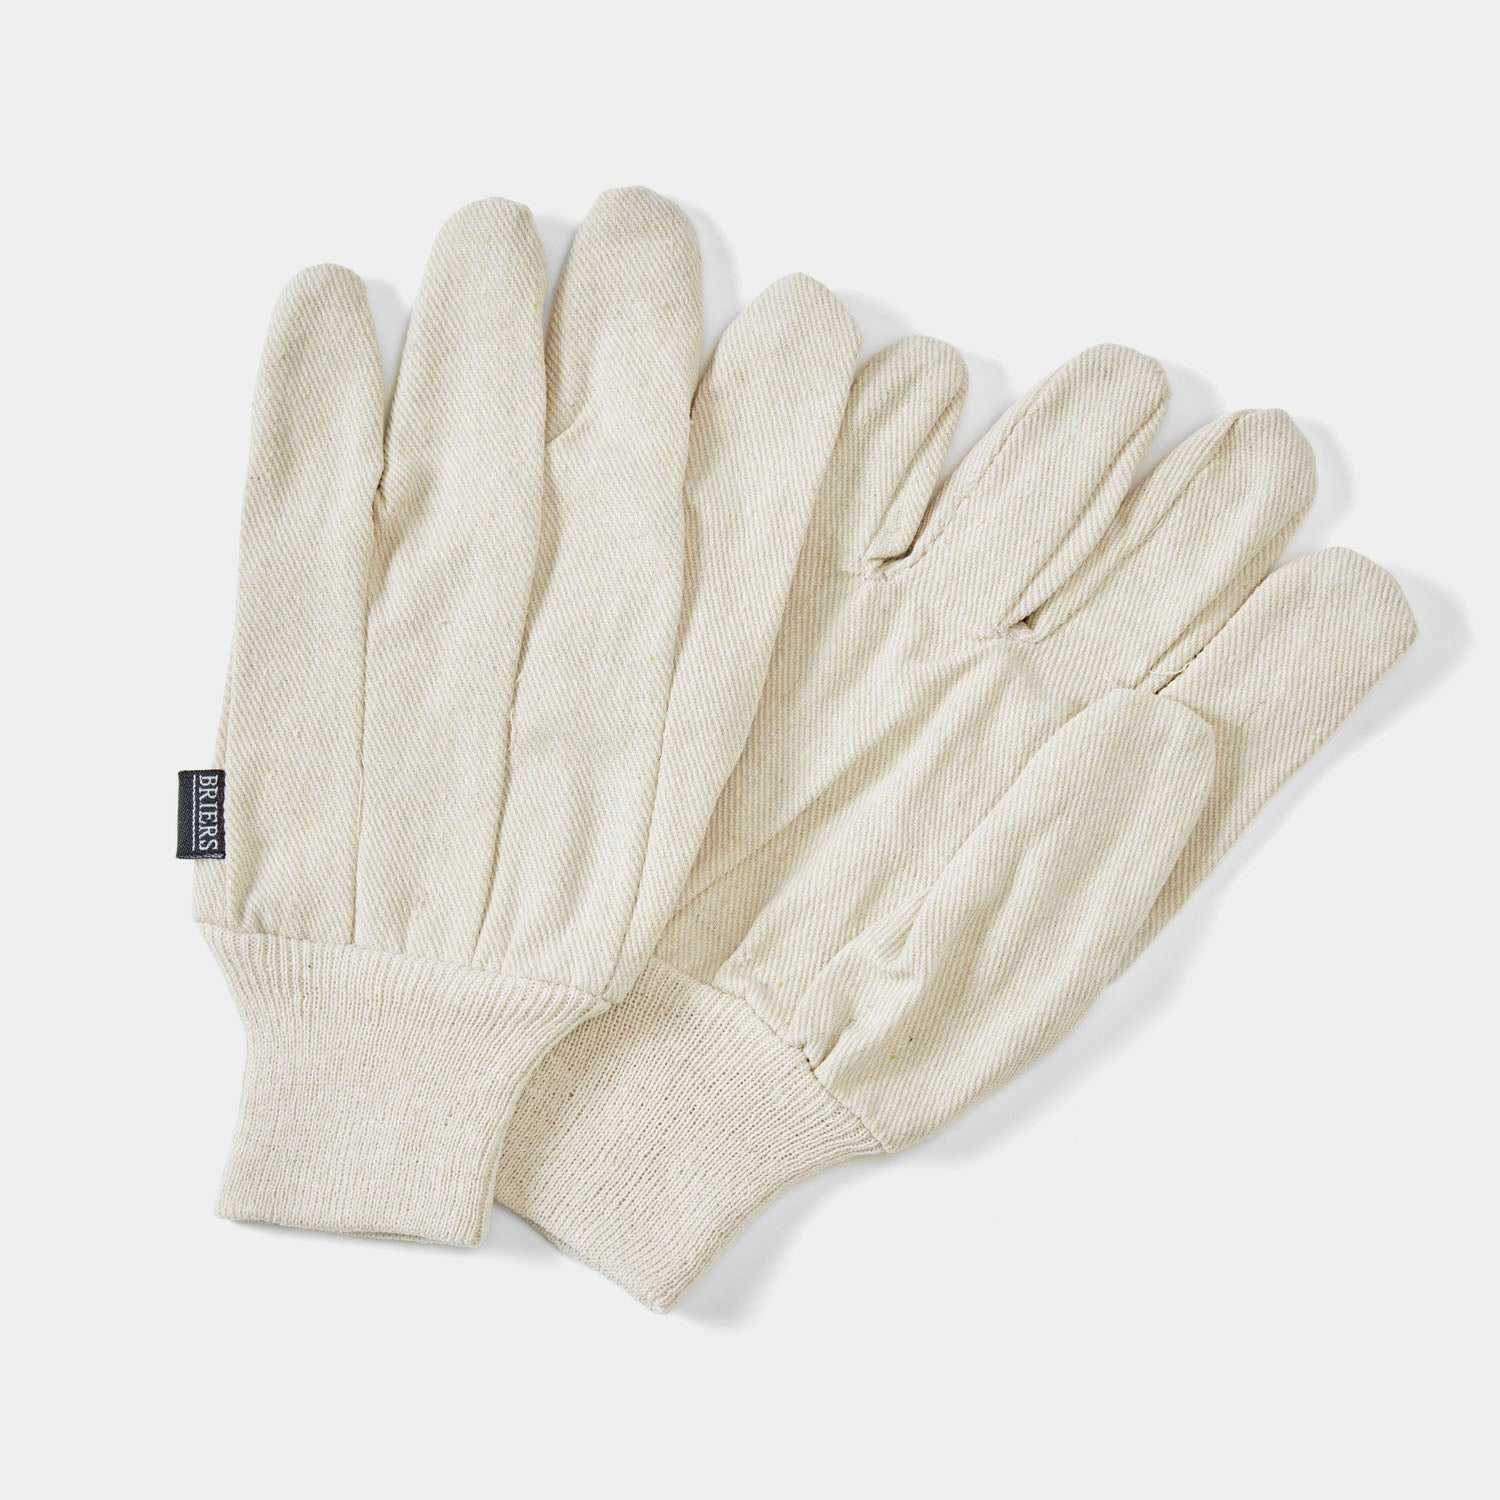 Cotton Garden Gloves